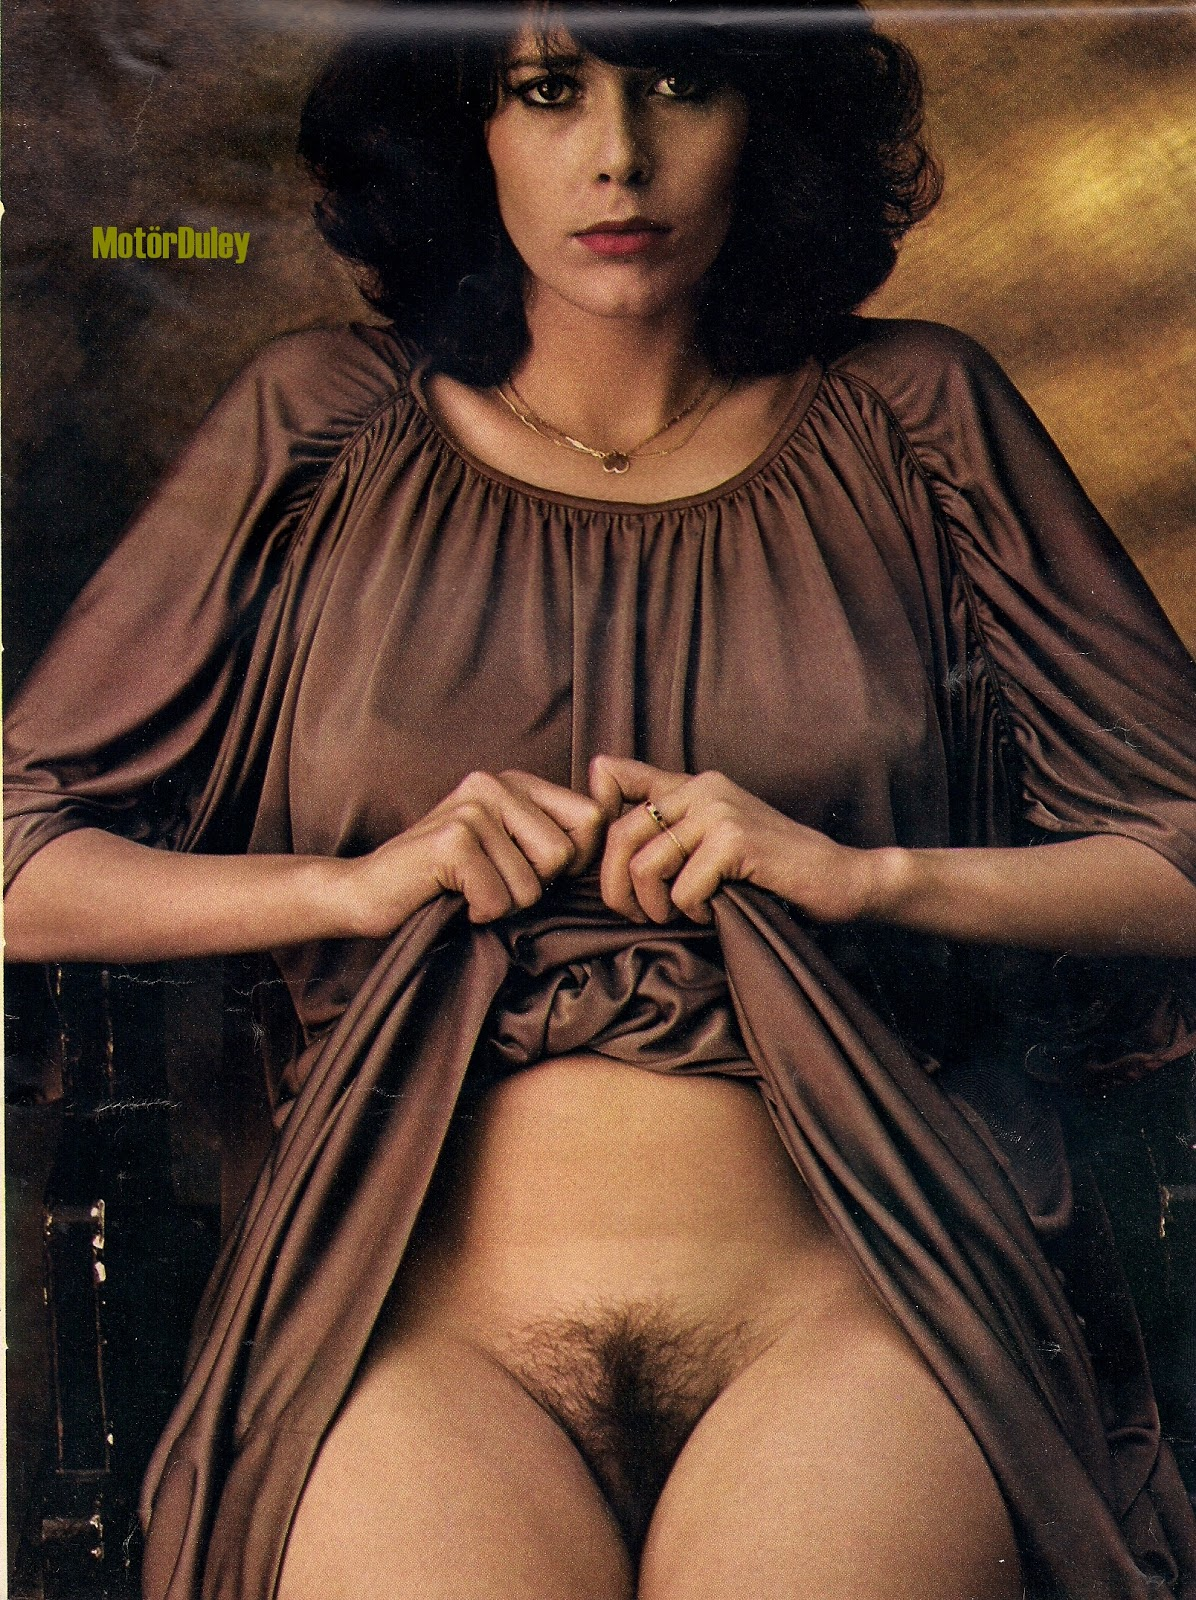 Apologise, Sylvia kristel gallery really. happens